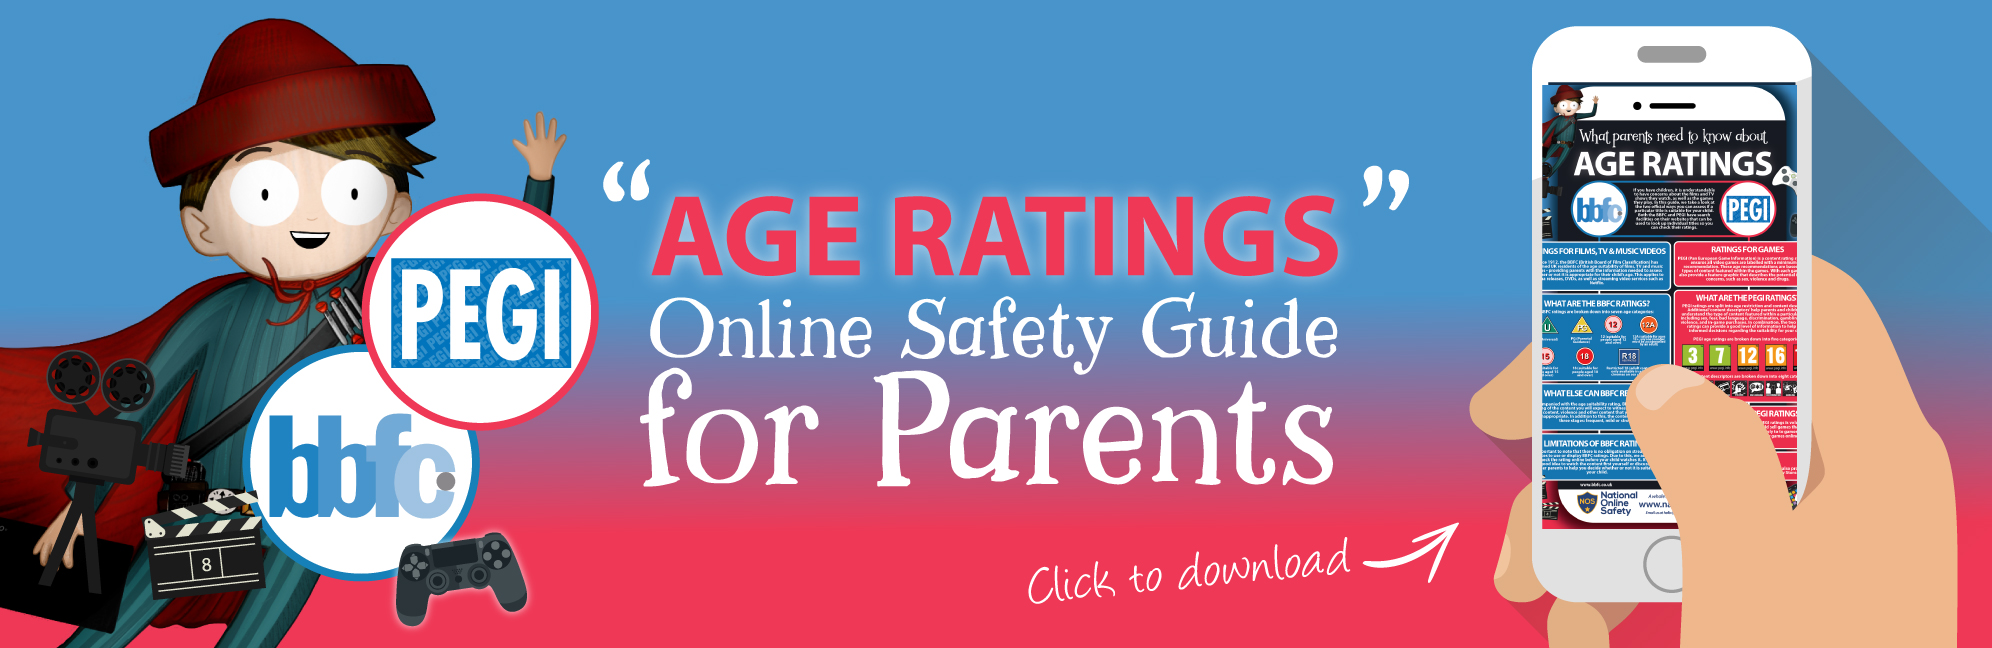 AGE-Ratings-Web-Banner